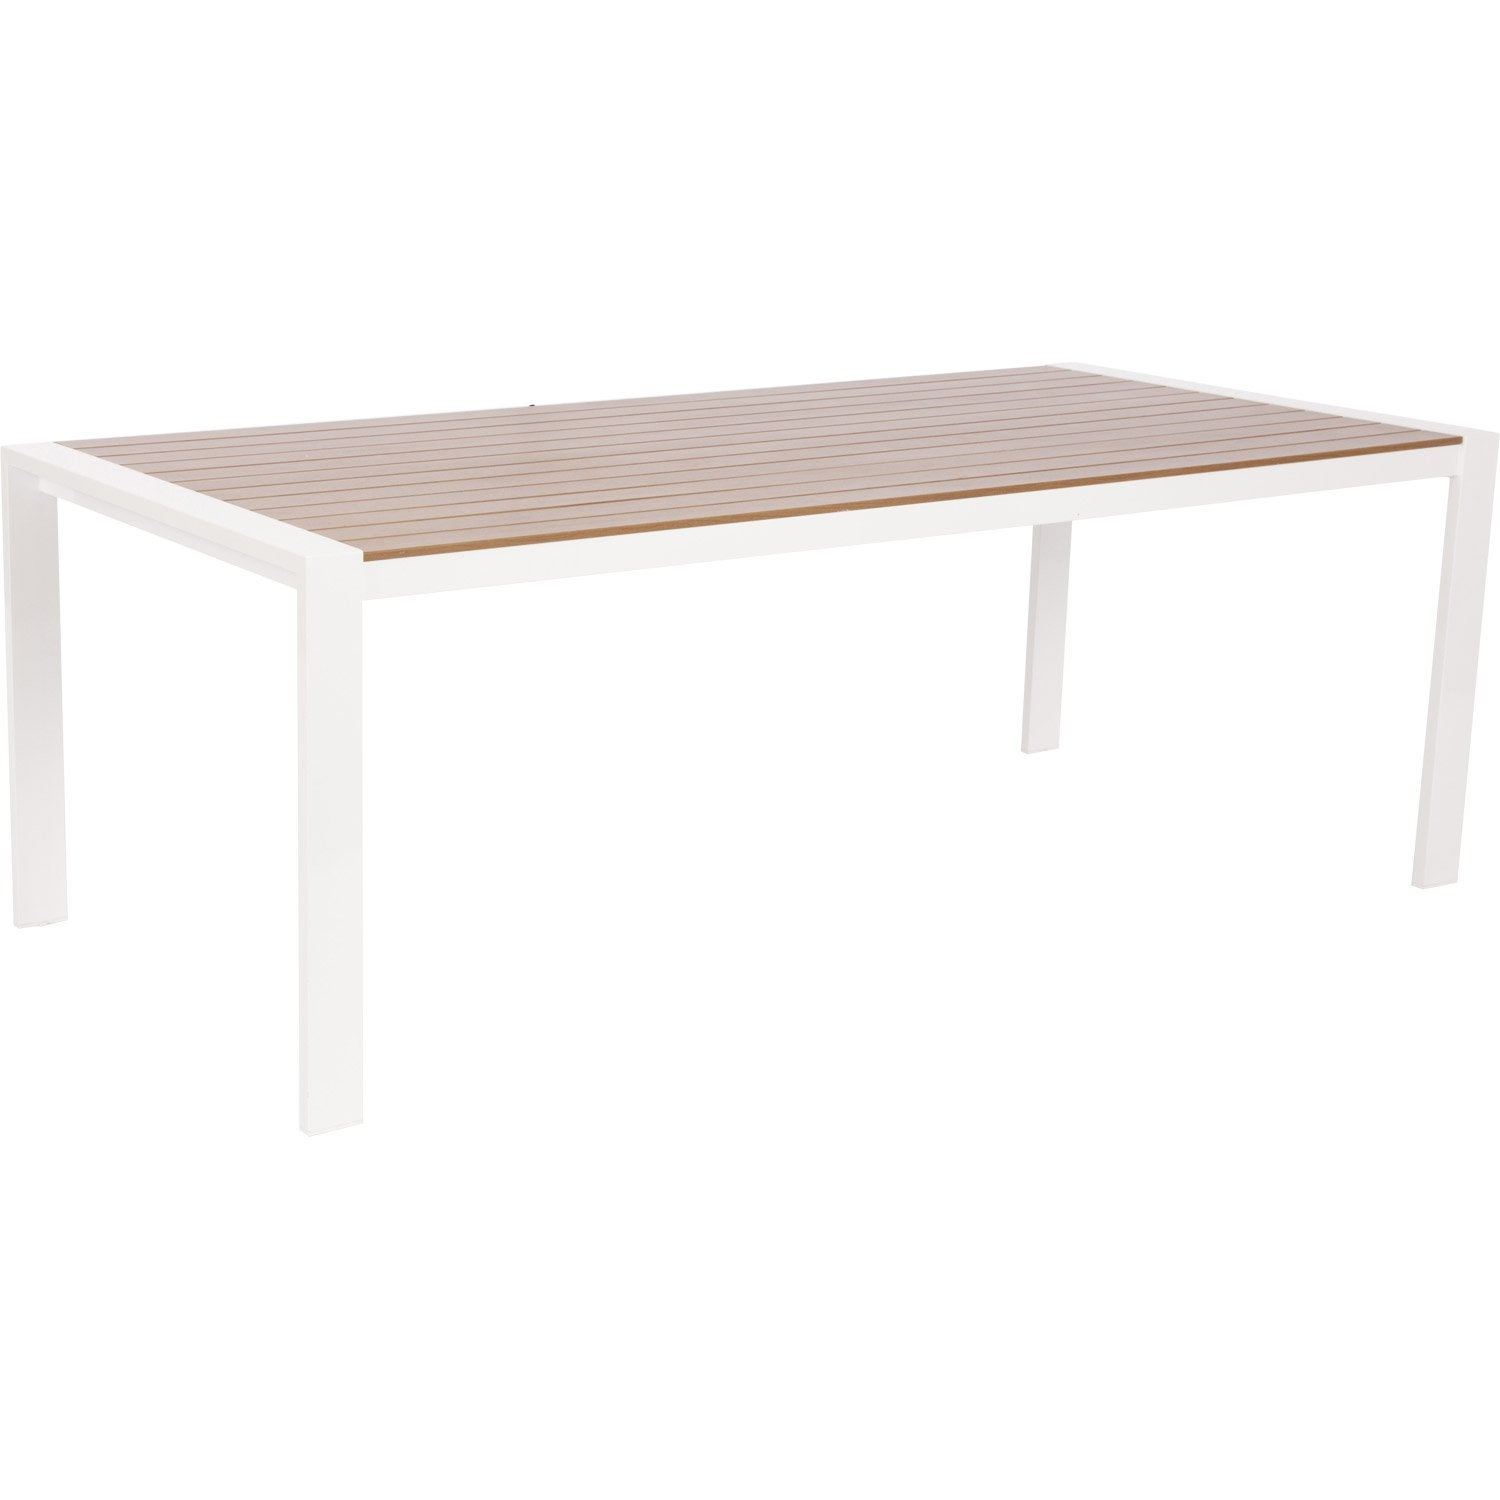 Table de jardin port nelson rectangulaire blanc imitation teck 8 personnes - Leroy merlin table jardin ...